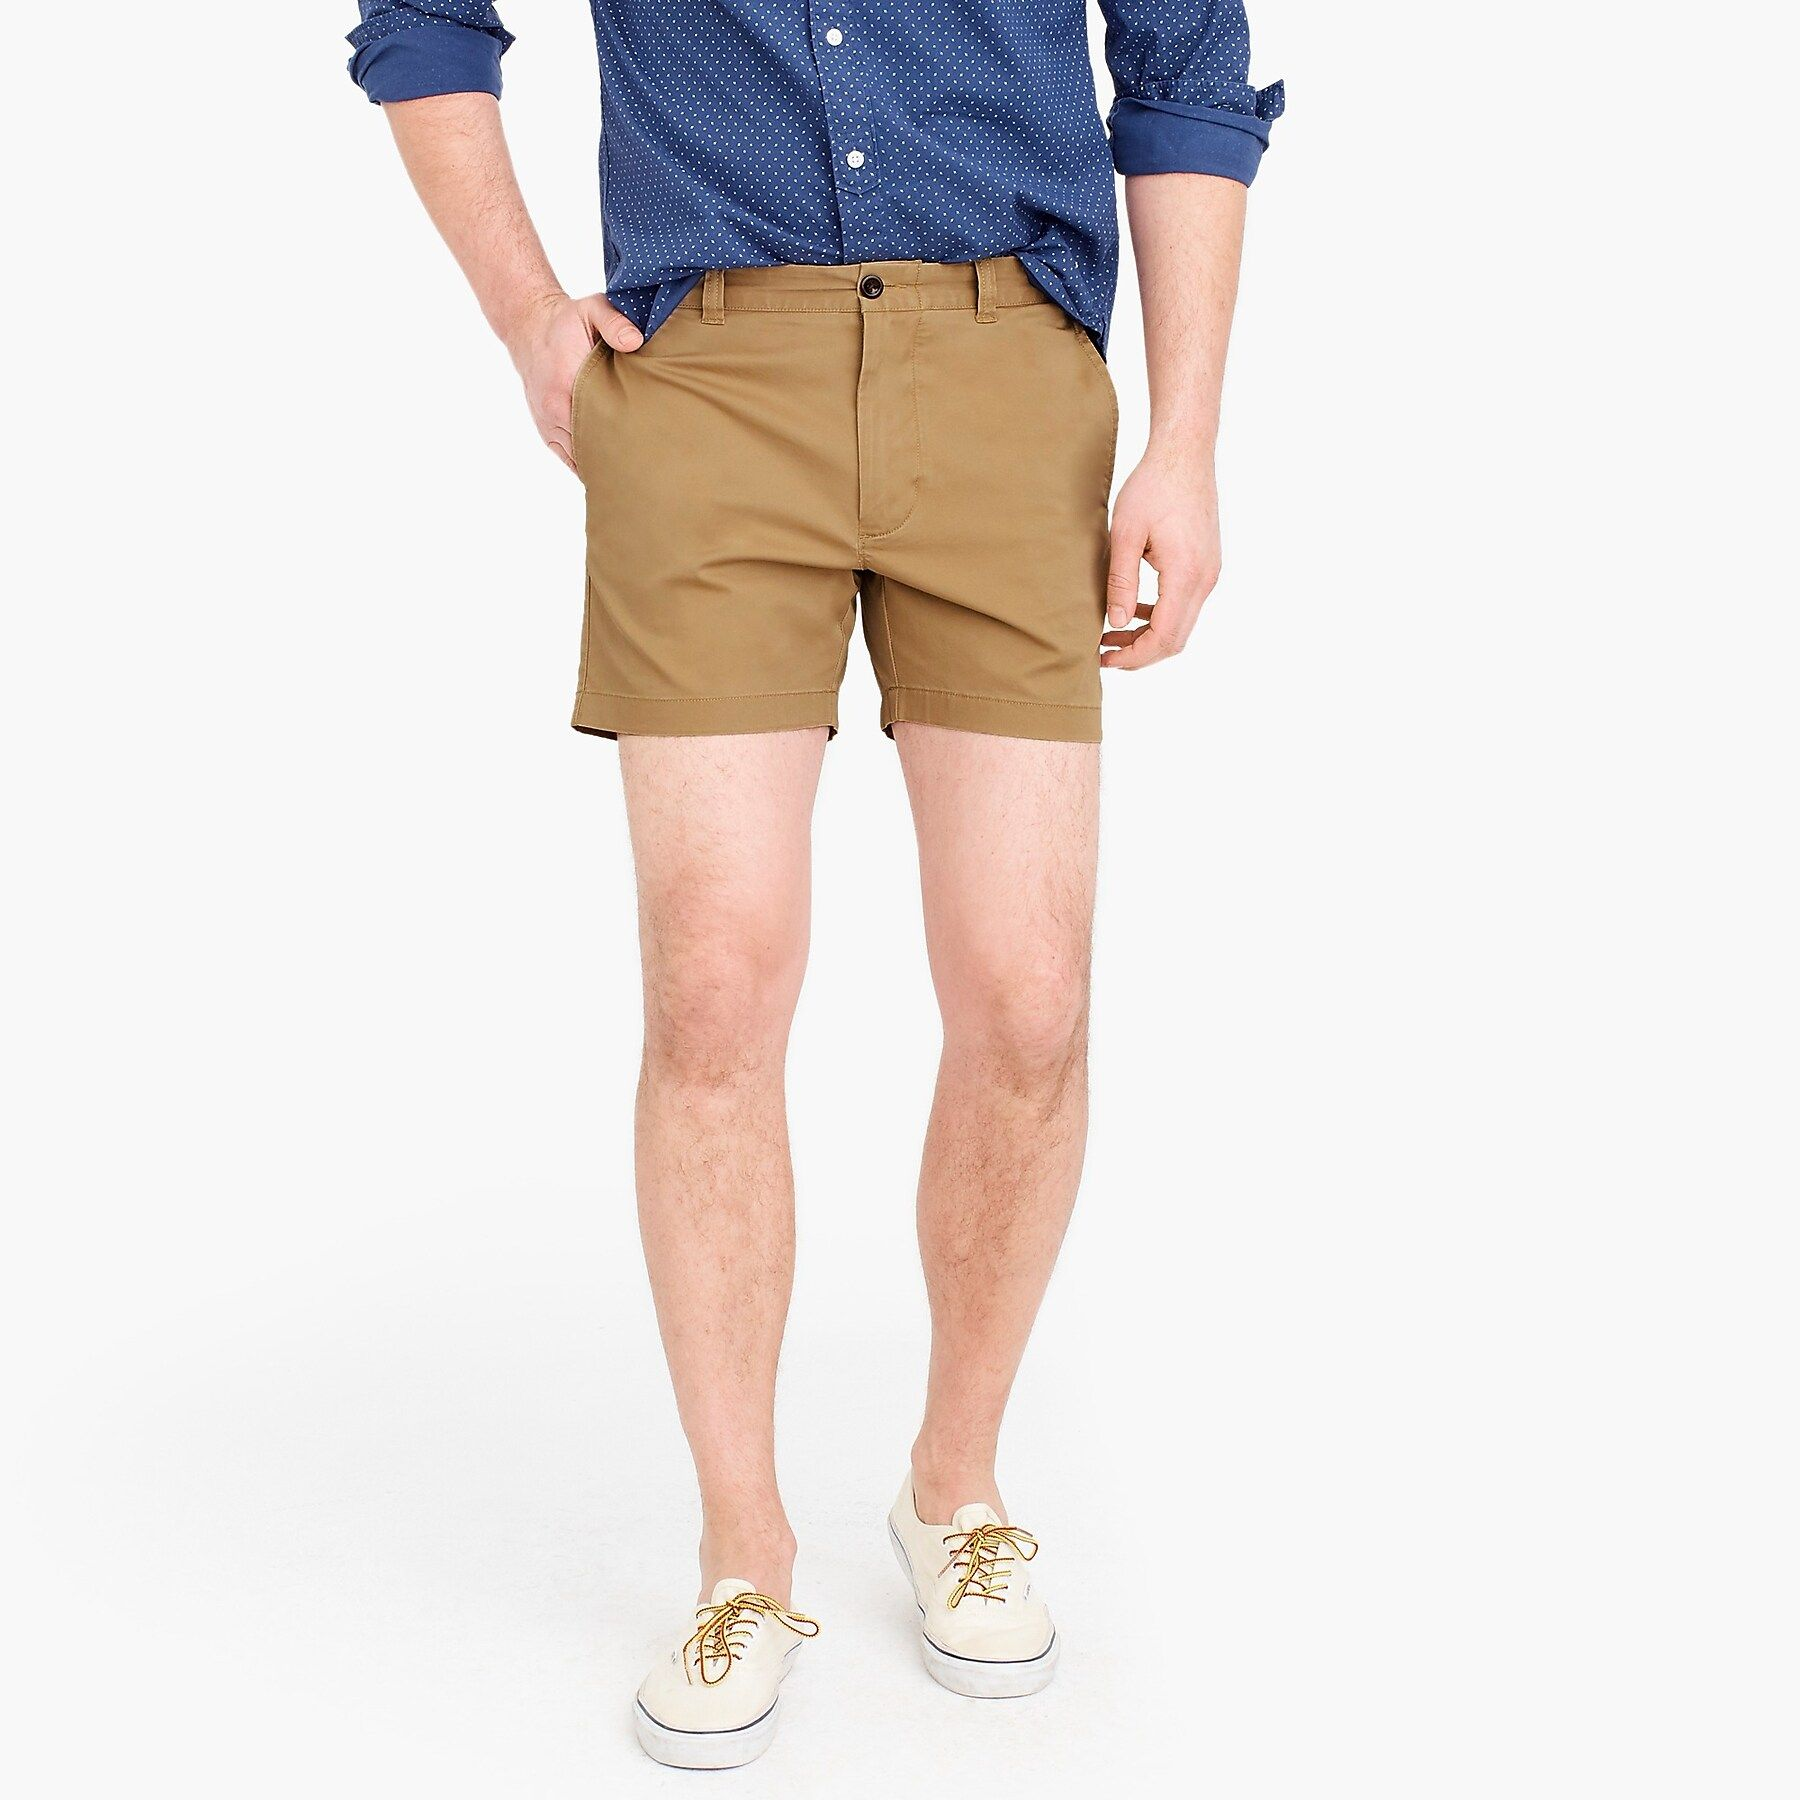 How To Style Stretch Shorts